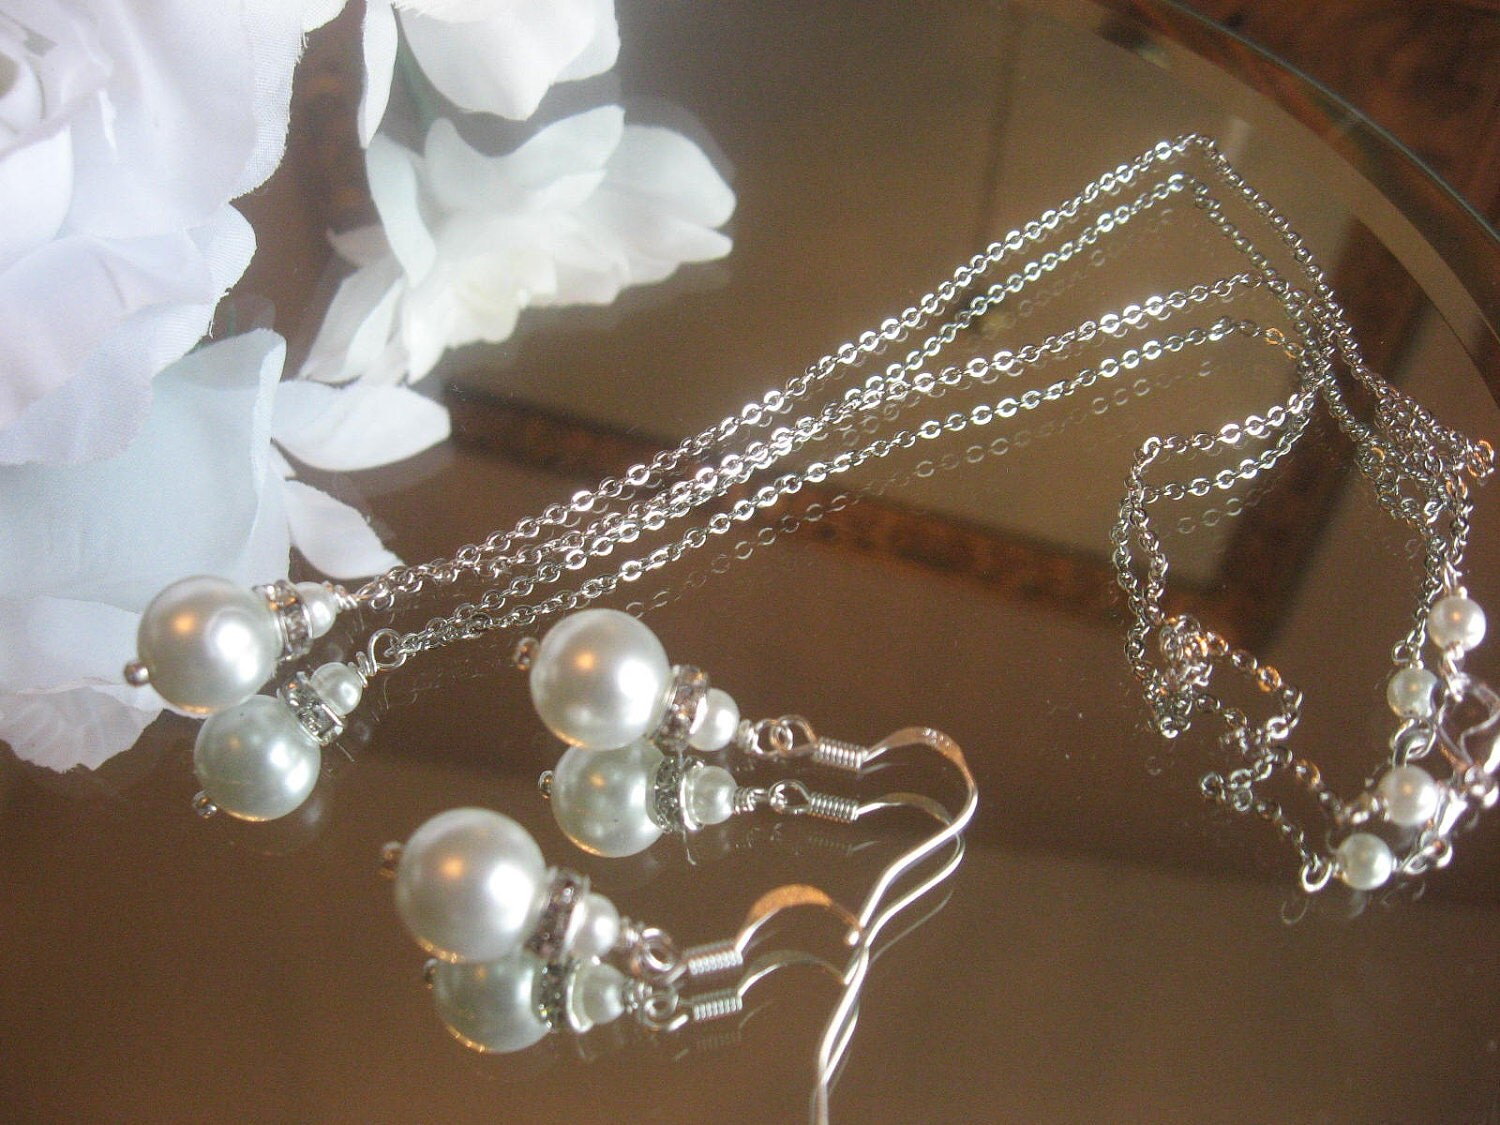 BRIDESMAID Gift Special - Pearl and Swarovski Rhinestone Silver Chain Necklace and Earring Set